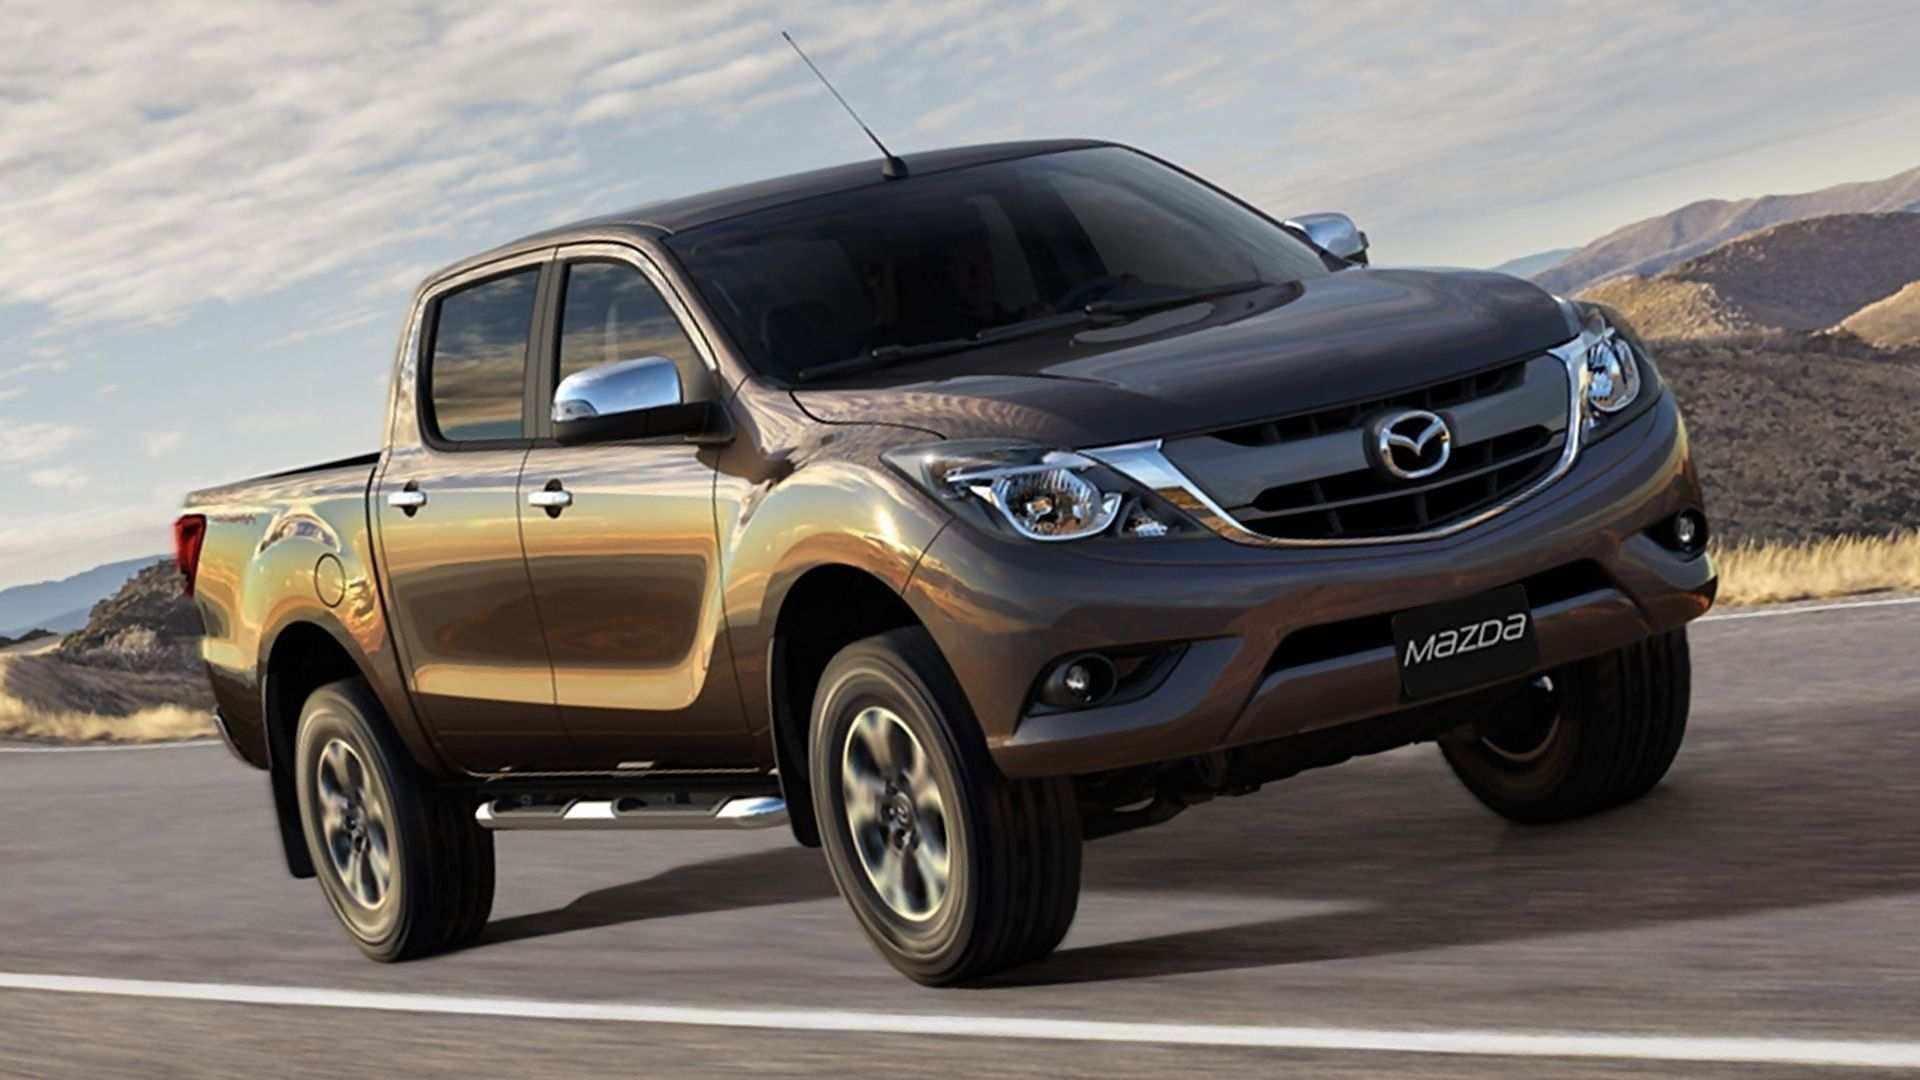 15 All New Mazda Pickup Truck 2019 Picture with Mazda Pickup Truck 2019